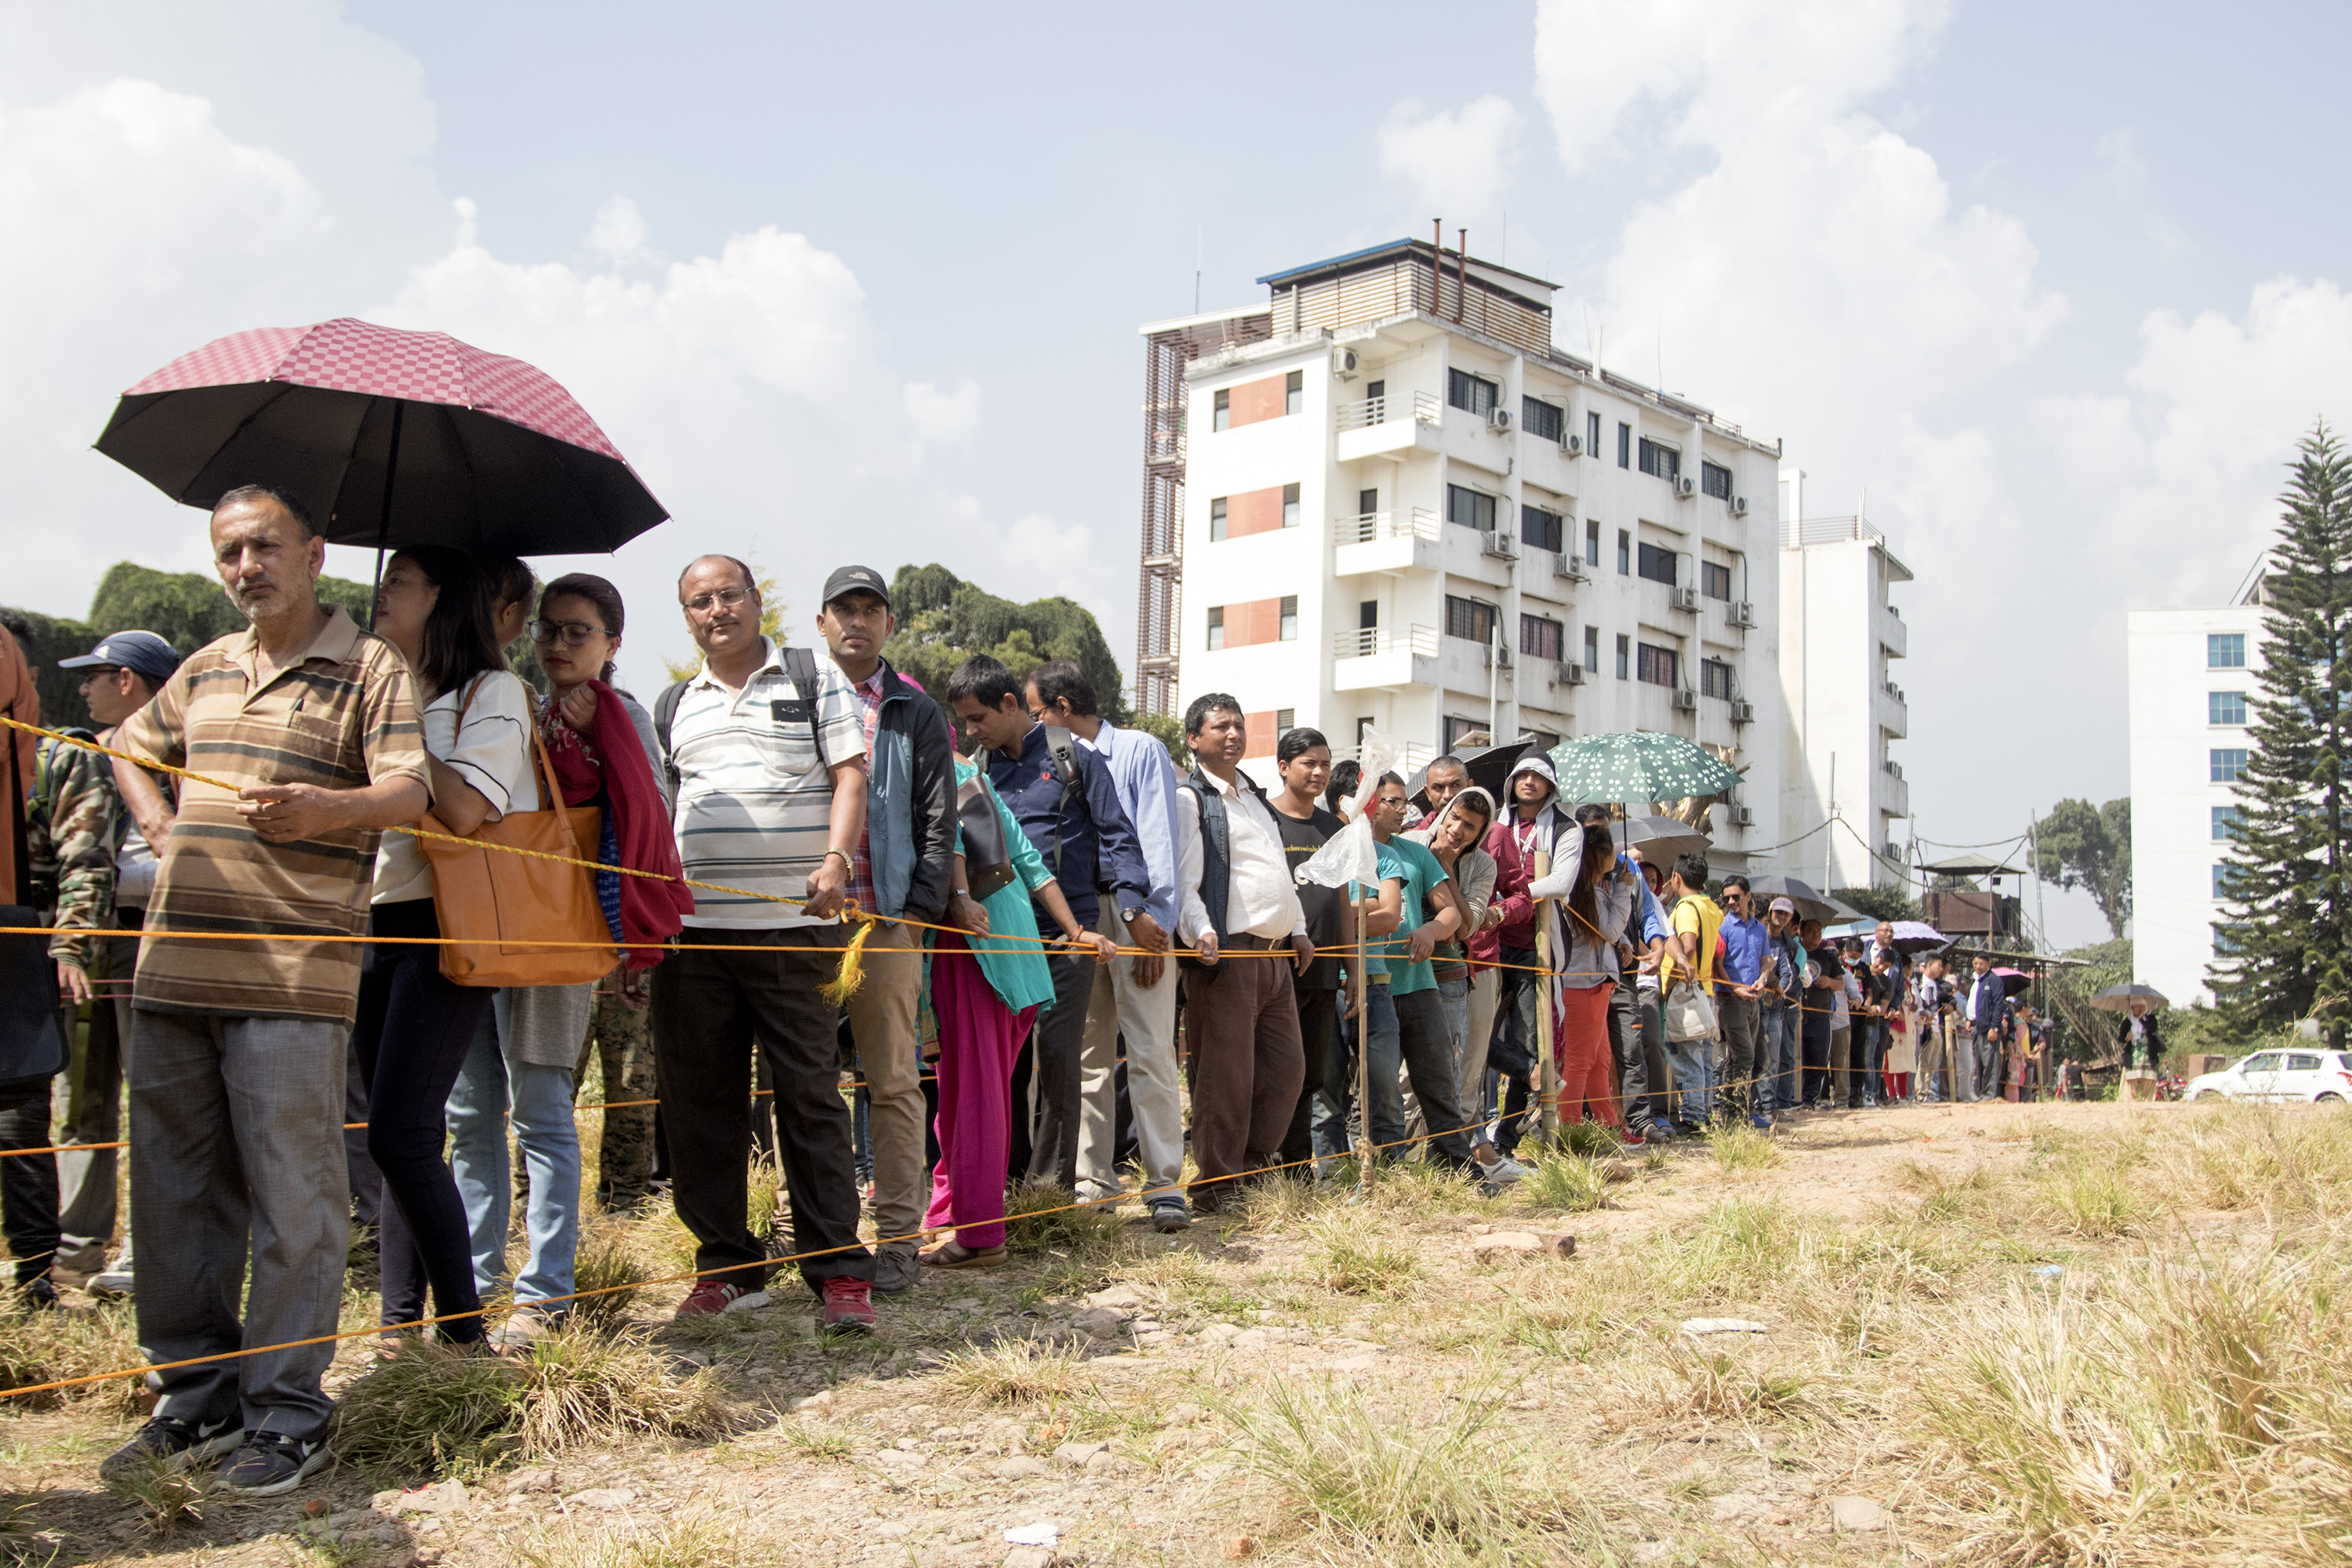 People queue up to collect new notes for Dashain (In photos) - Visual Story - The Kathmandu Post